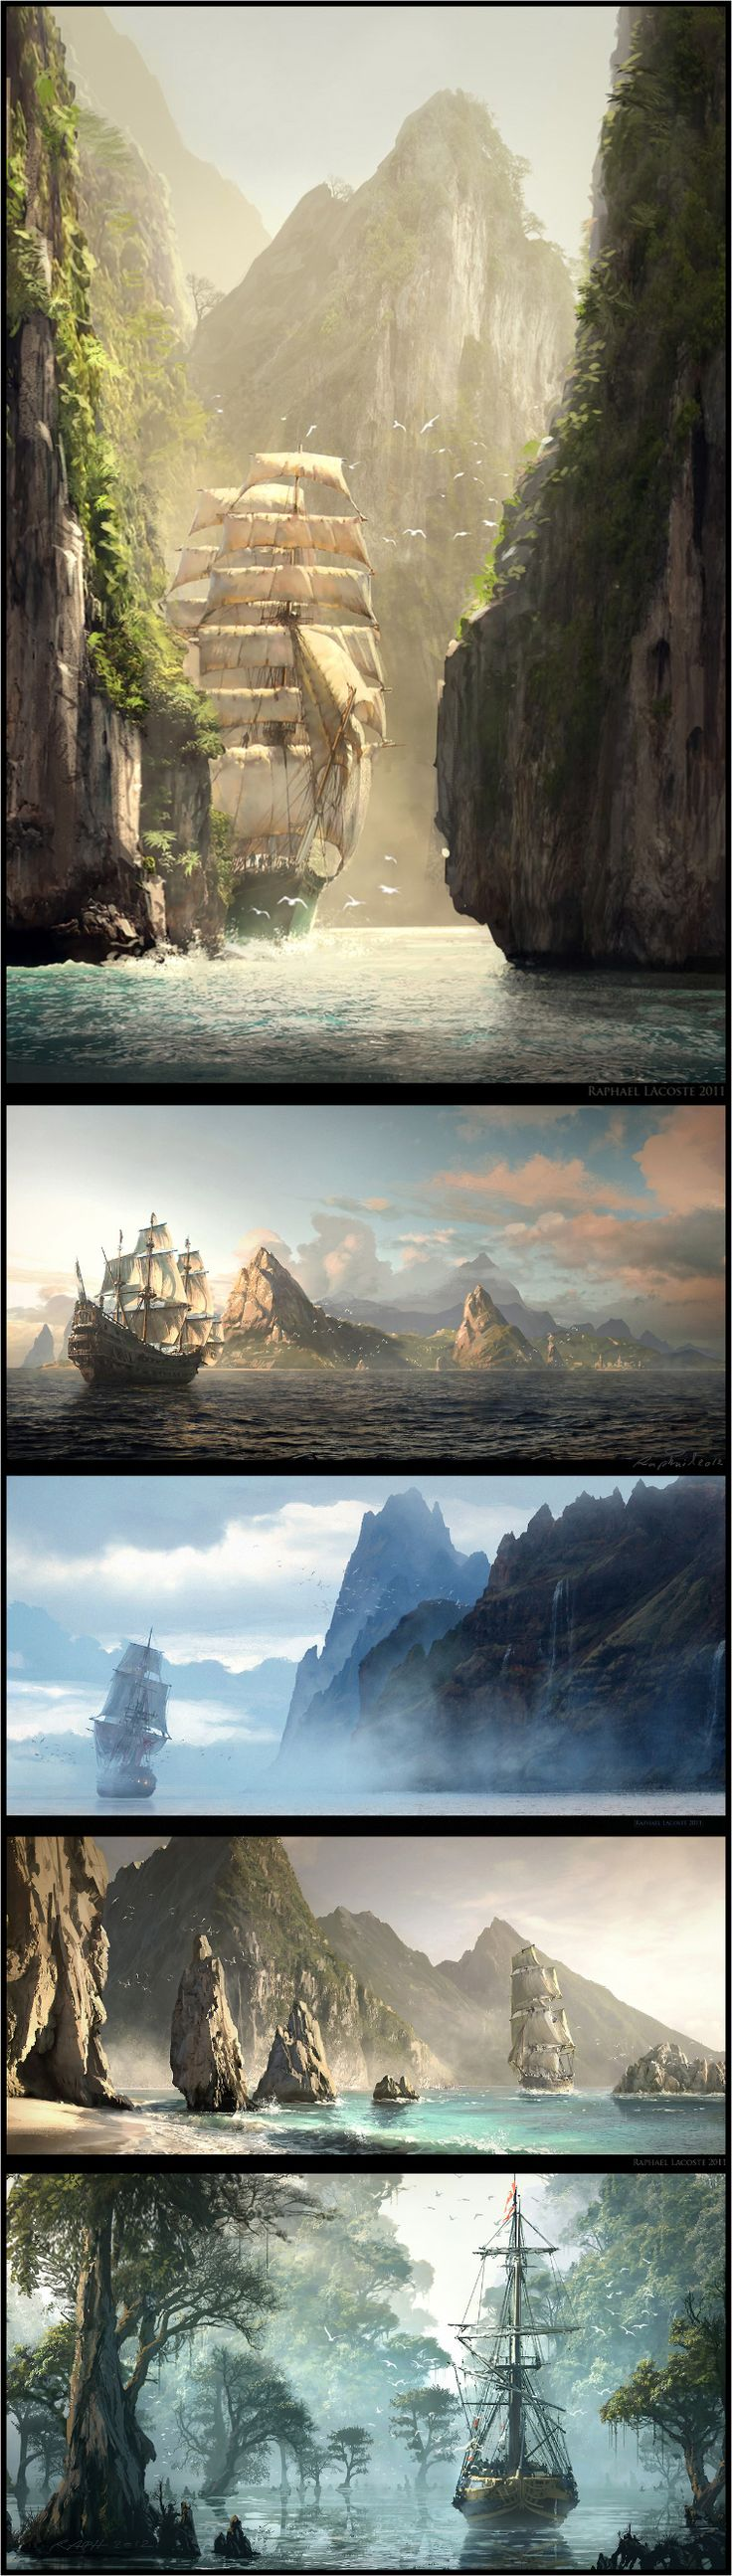 These look great! I loved this game, it was SO much fun!! Concept art for Assassin's Creed IV: Black Flag by artist Raphael Lacoste